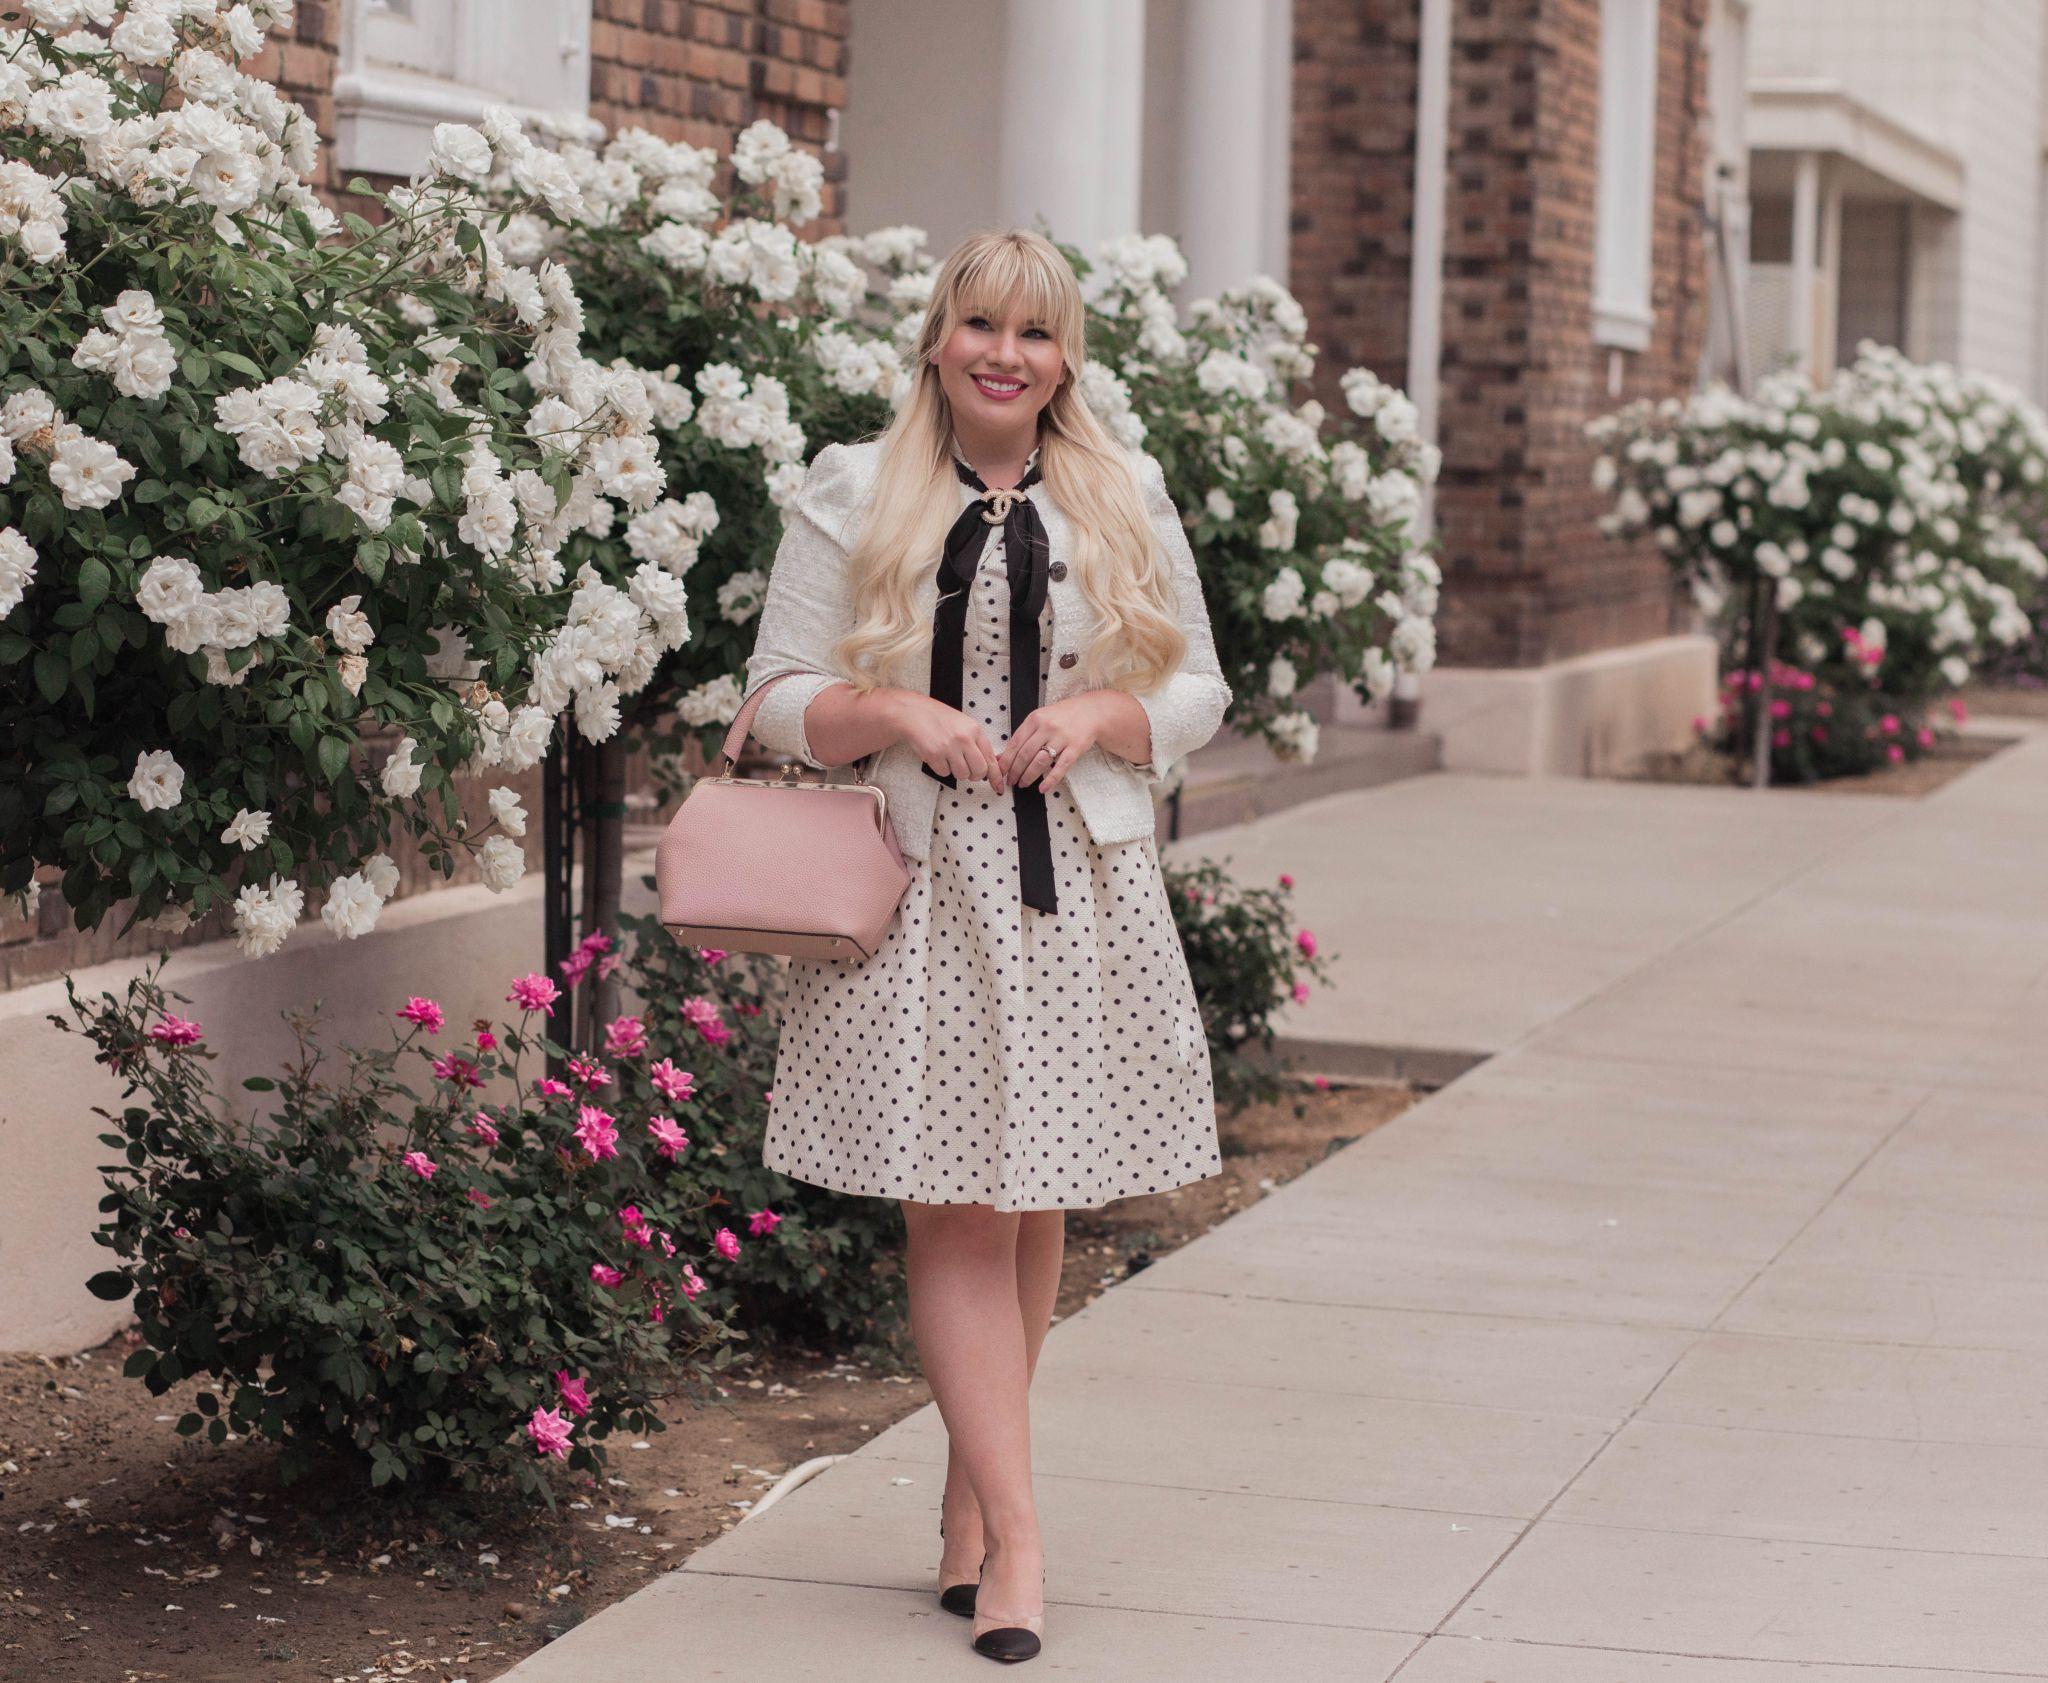 How to Look Professional in Polka Dots